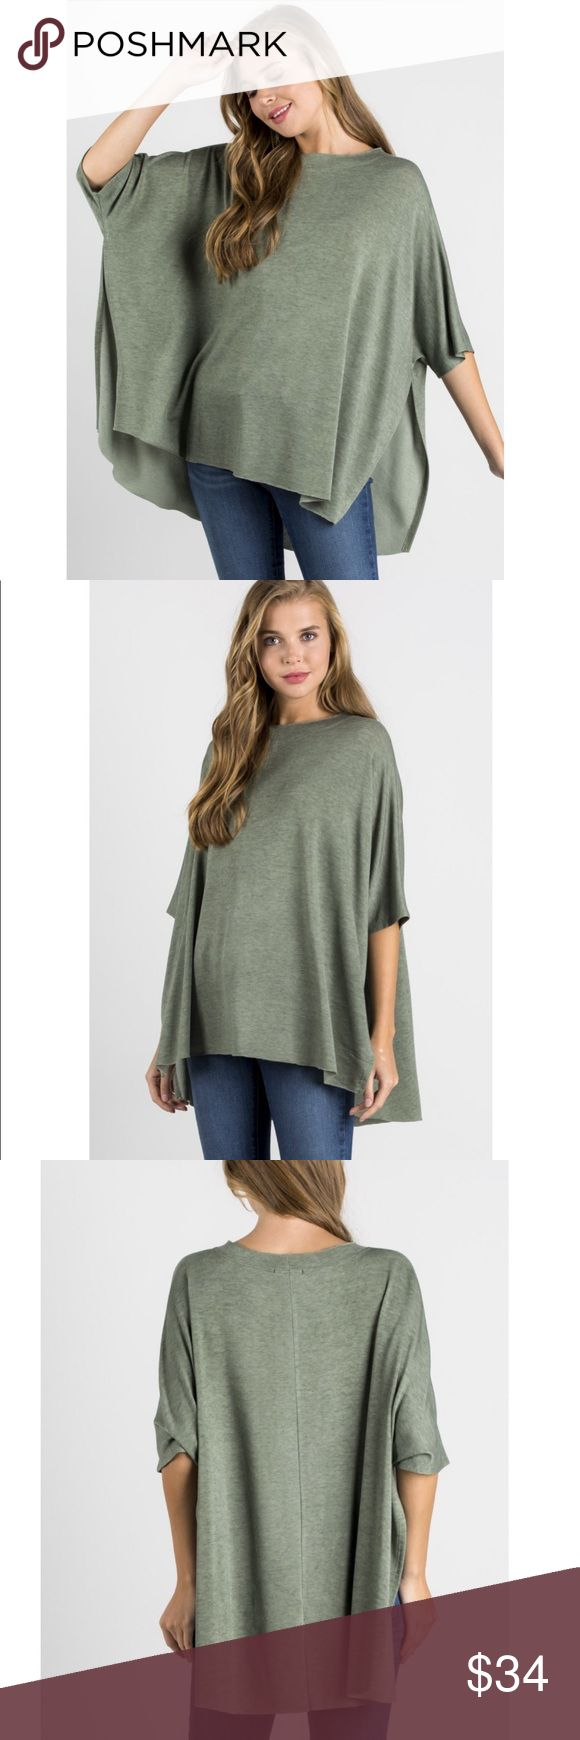 Draped Loose Swing Tunic Top with Side Slits This is such a fun way to wear your basics on a casual day! Side slit  will show a cute cami underneath. Fabric is soft with stretch.   Cotton Bleu is a trusted boutique vendor and makes quality clothing in the USA.  73% polyester, 23% rayon, 4% spandex. Also available in a neutral oatmeal color under separate listing in this closet.  Bundle 2+ items from this closet for a discount. Cotton Bleu Tops Tunics